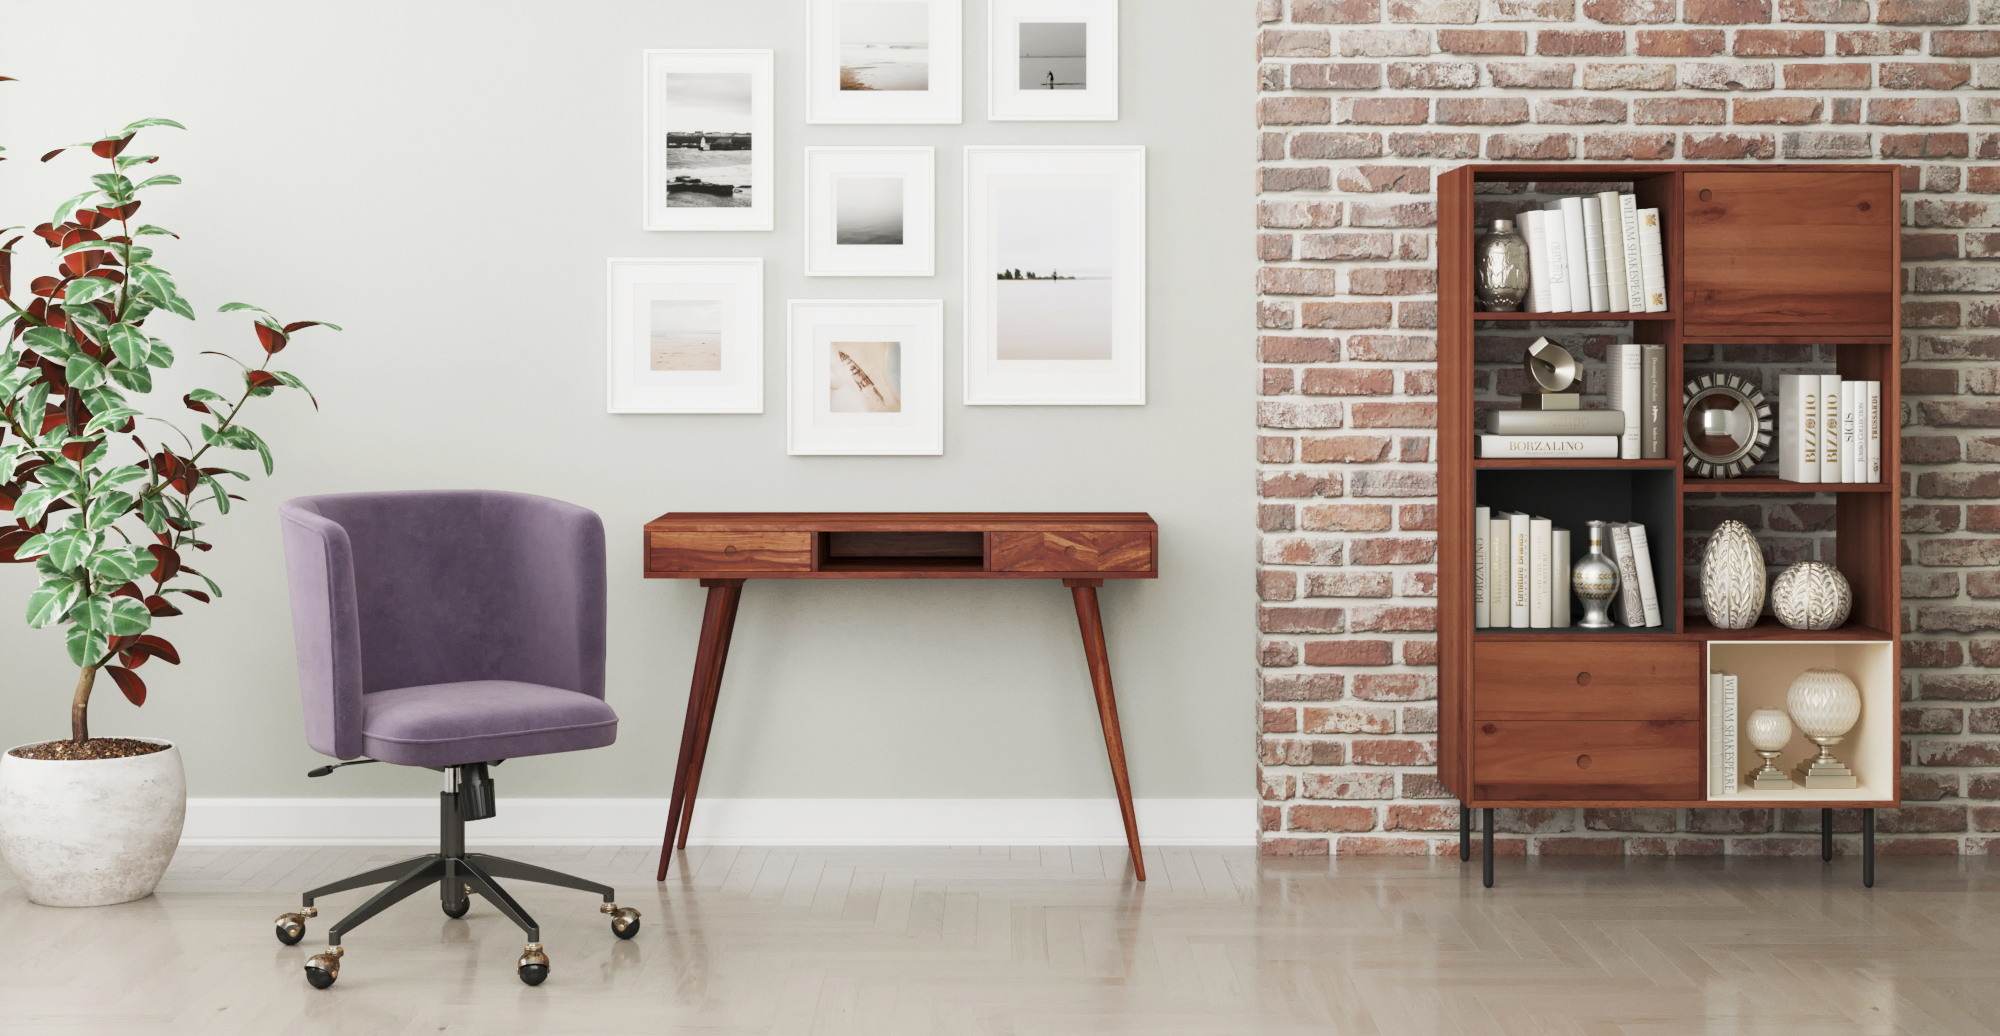 Brosa Potter Desk with Kidd Bookcase in Mid Century Modern Style Home Office